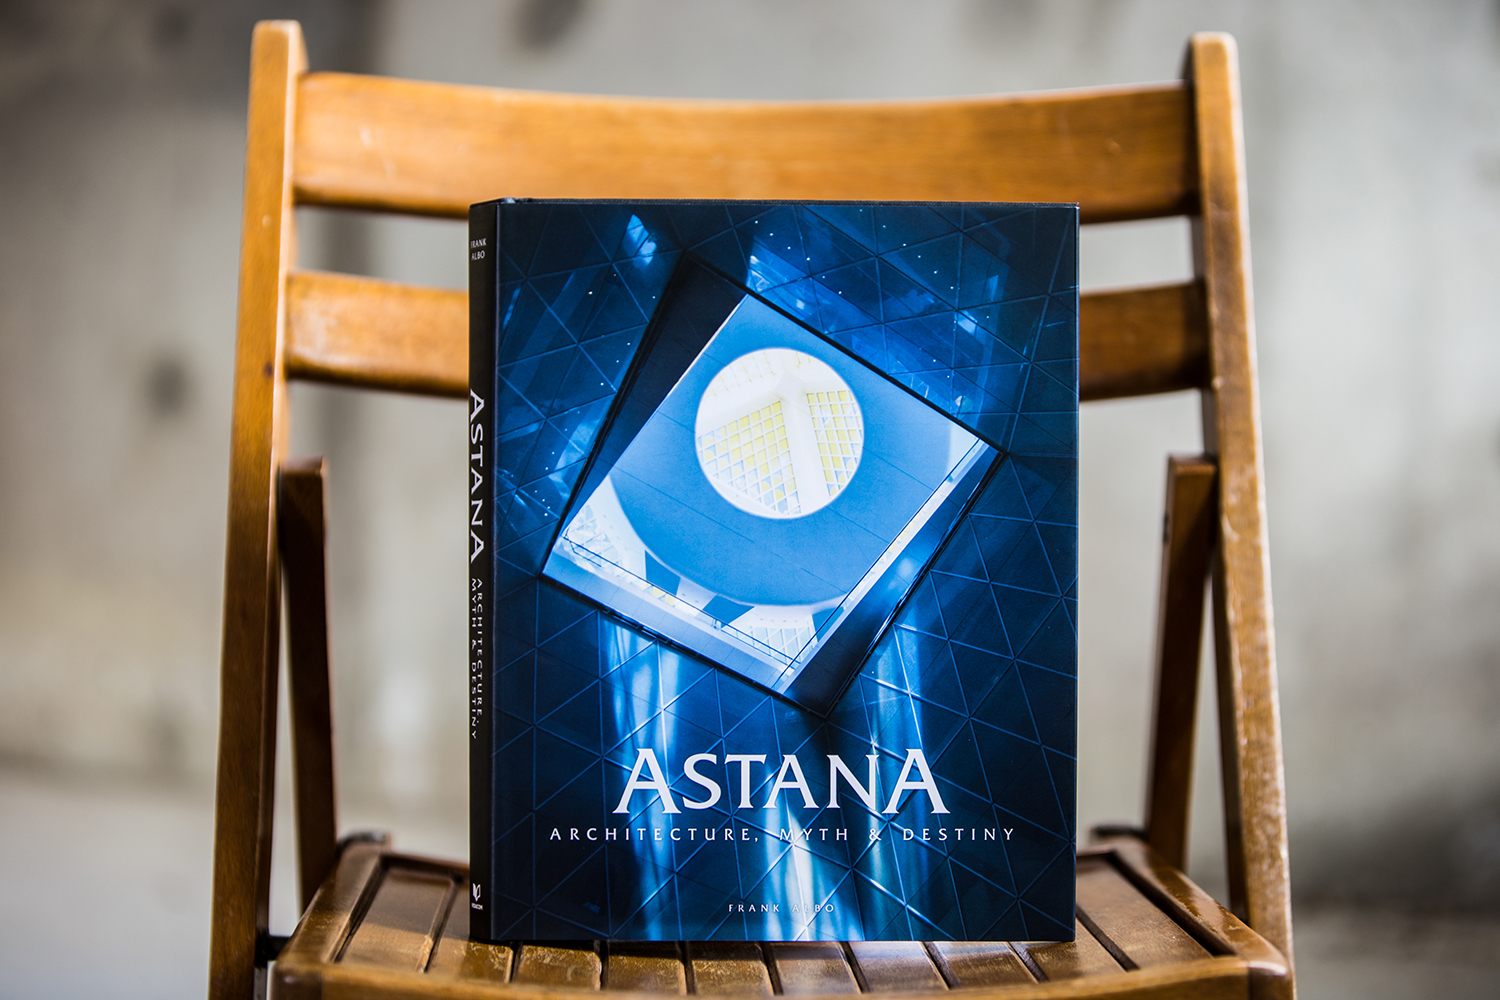 ASTANA Architecture, Myth and Destiny by Dr. Frank Albo, Architectural Historian and Freemasonry Expert